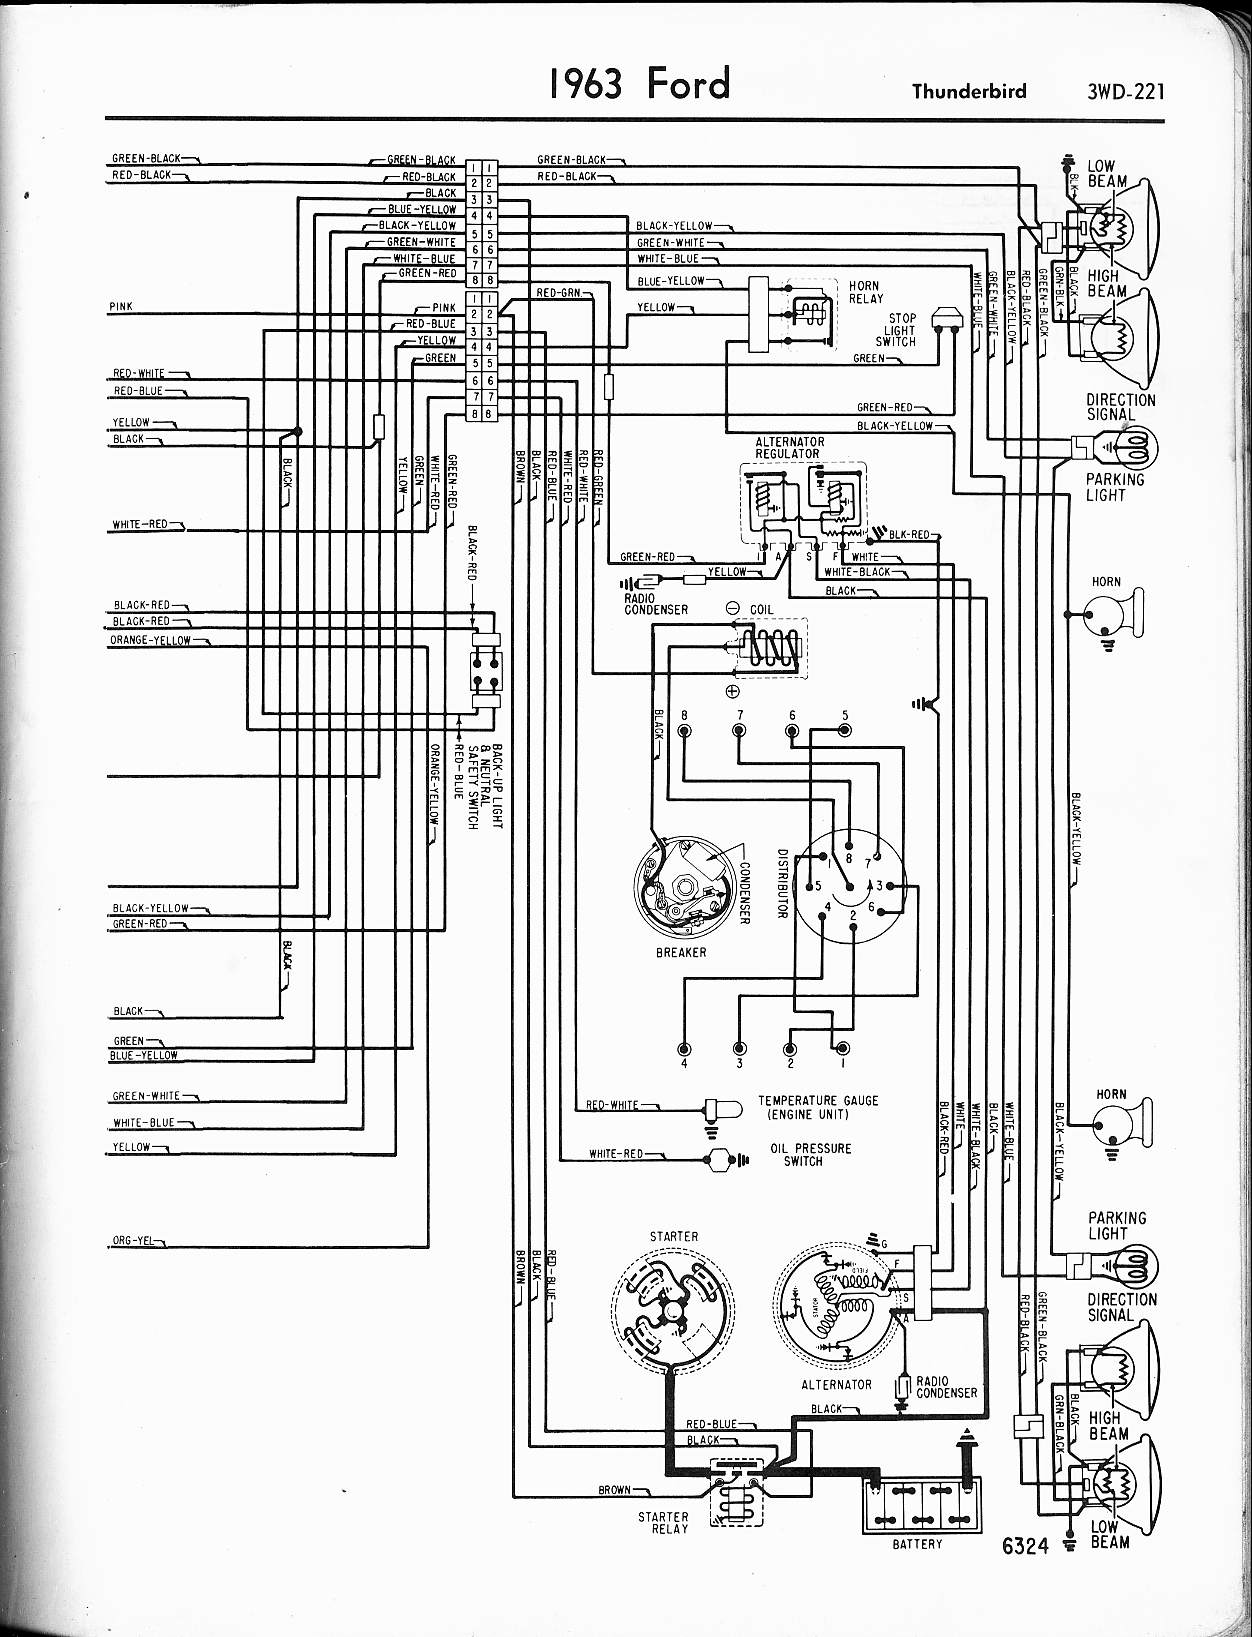 1962 Ford Thunderbird Wiring Diagram Online Manuual Of Cara Memeriksa Kelistrikan 57 65 Diagrams Rh Oldcarmanualproject Com Power Window Relay Charging System